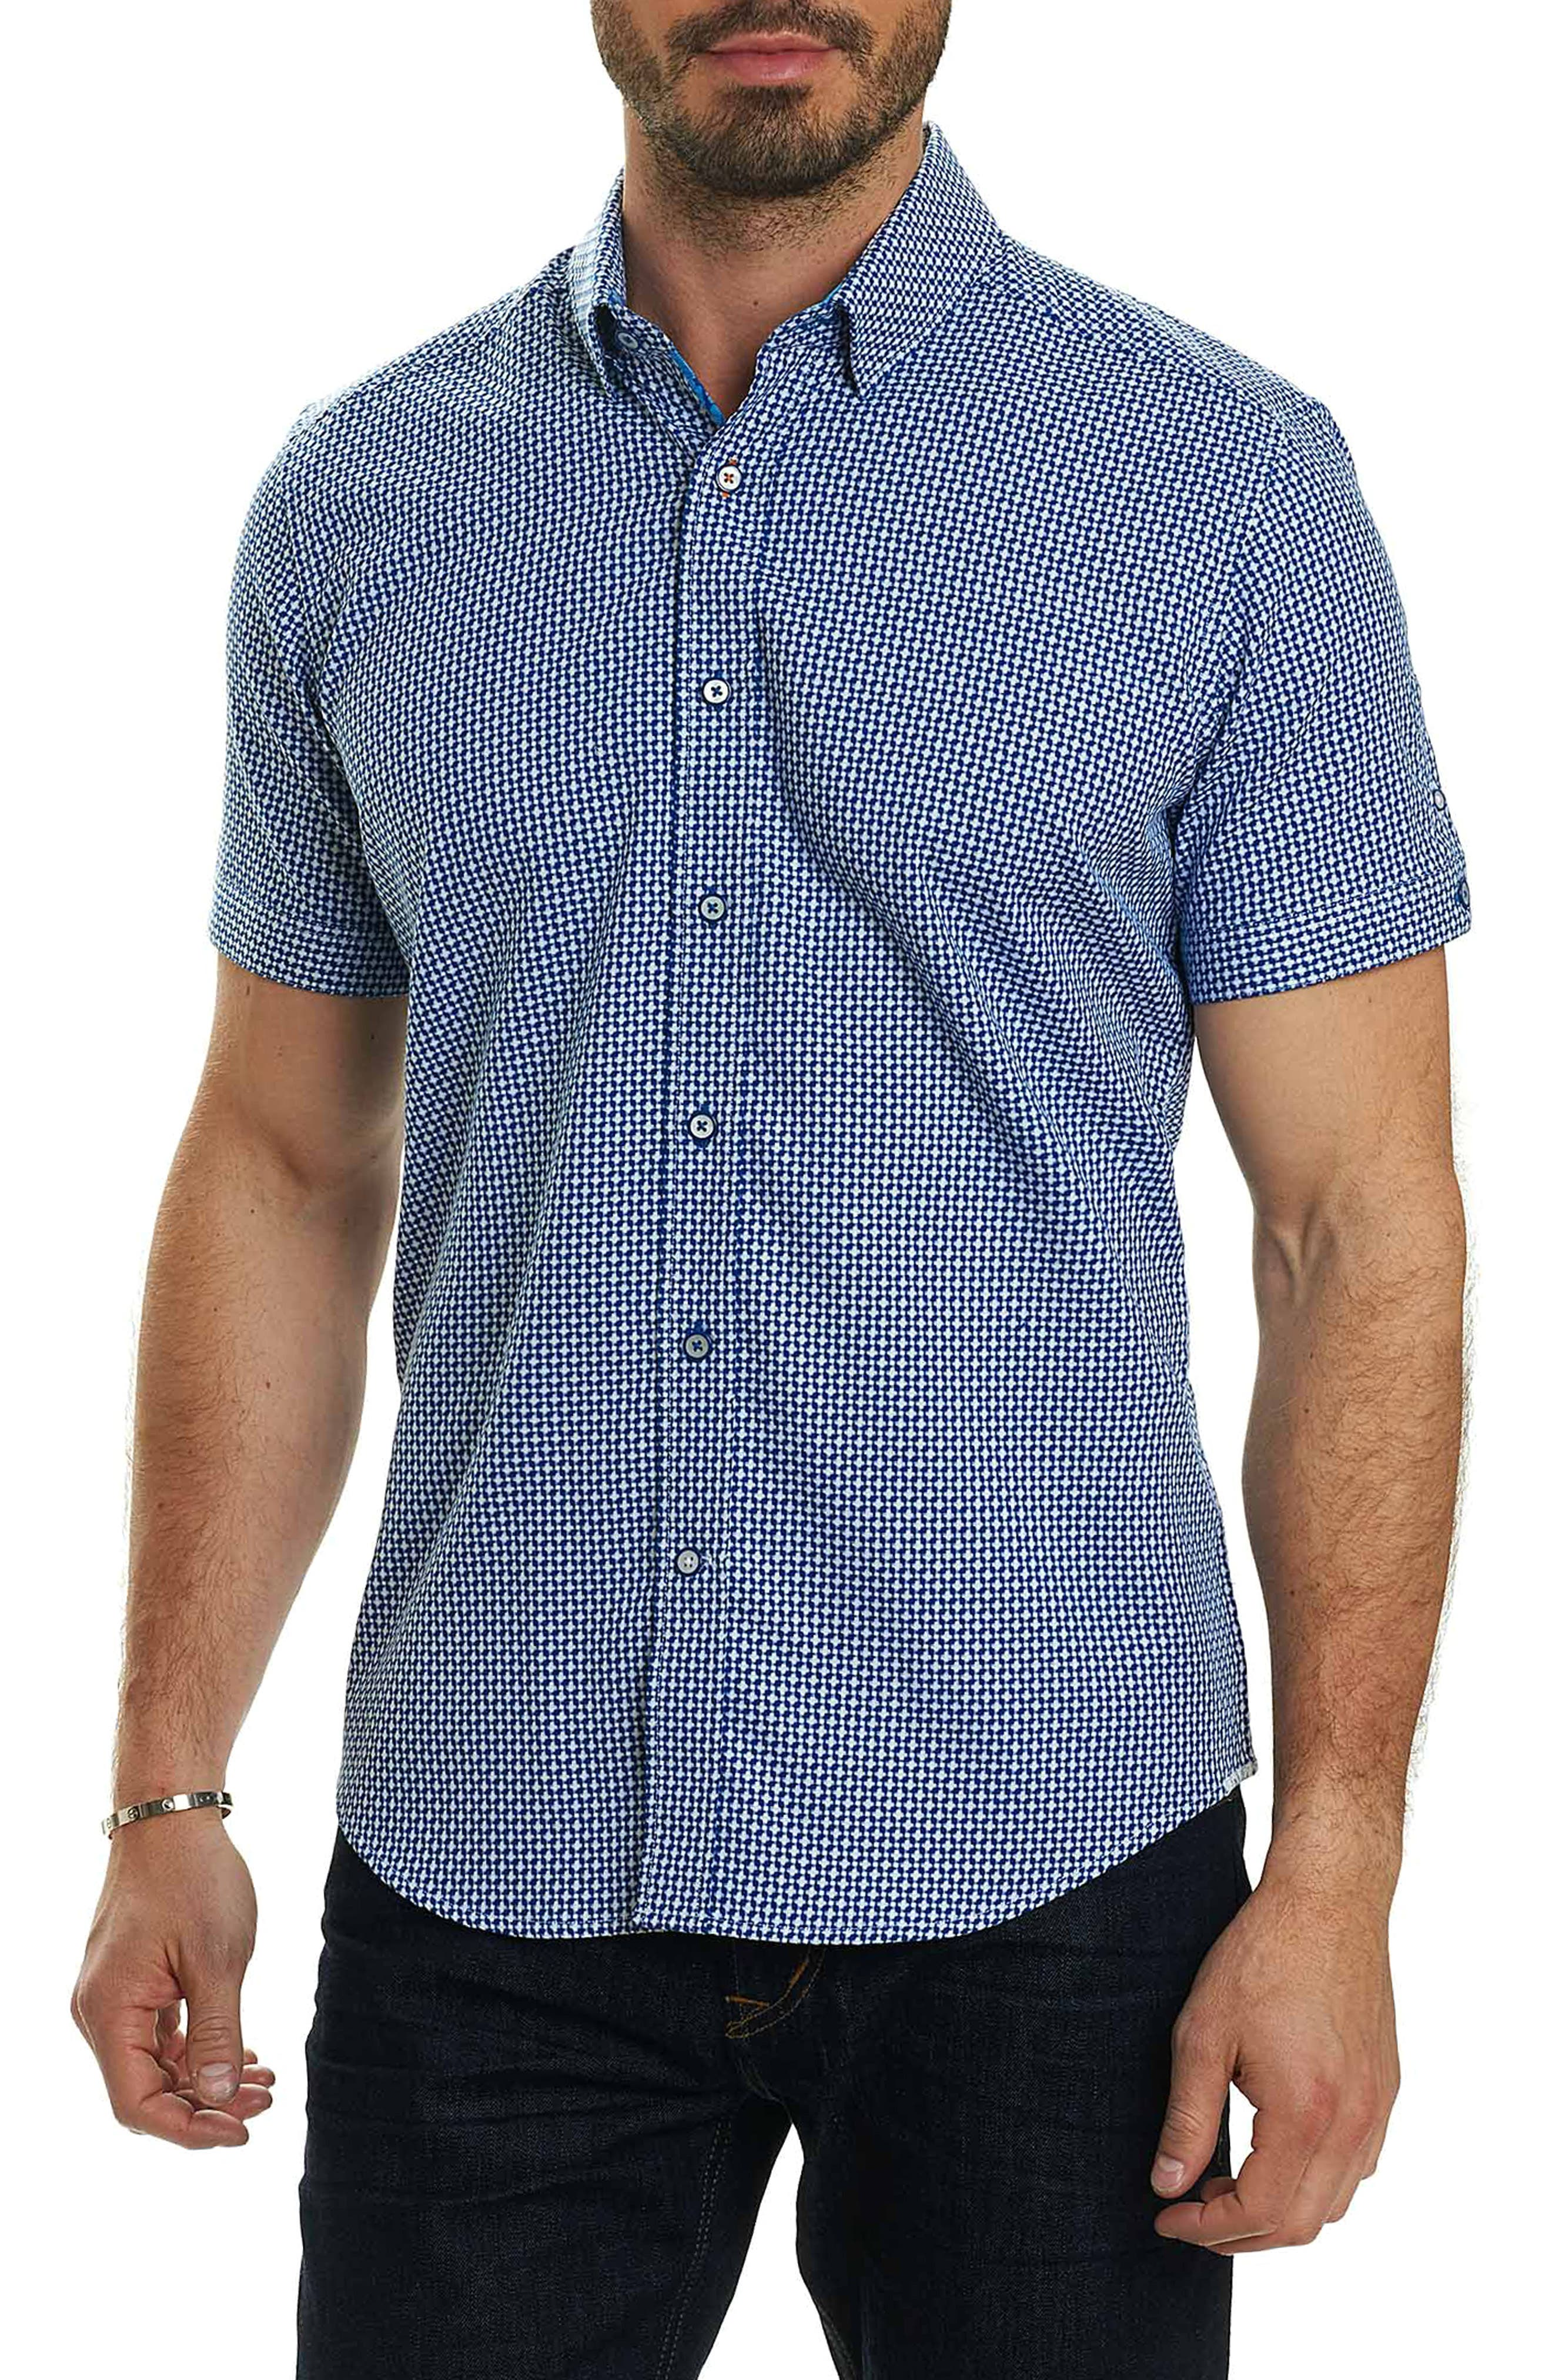 Alternate Image 1 Selected - Robert Graham Nikko Tailored Fit Print Sport Shirt